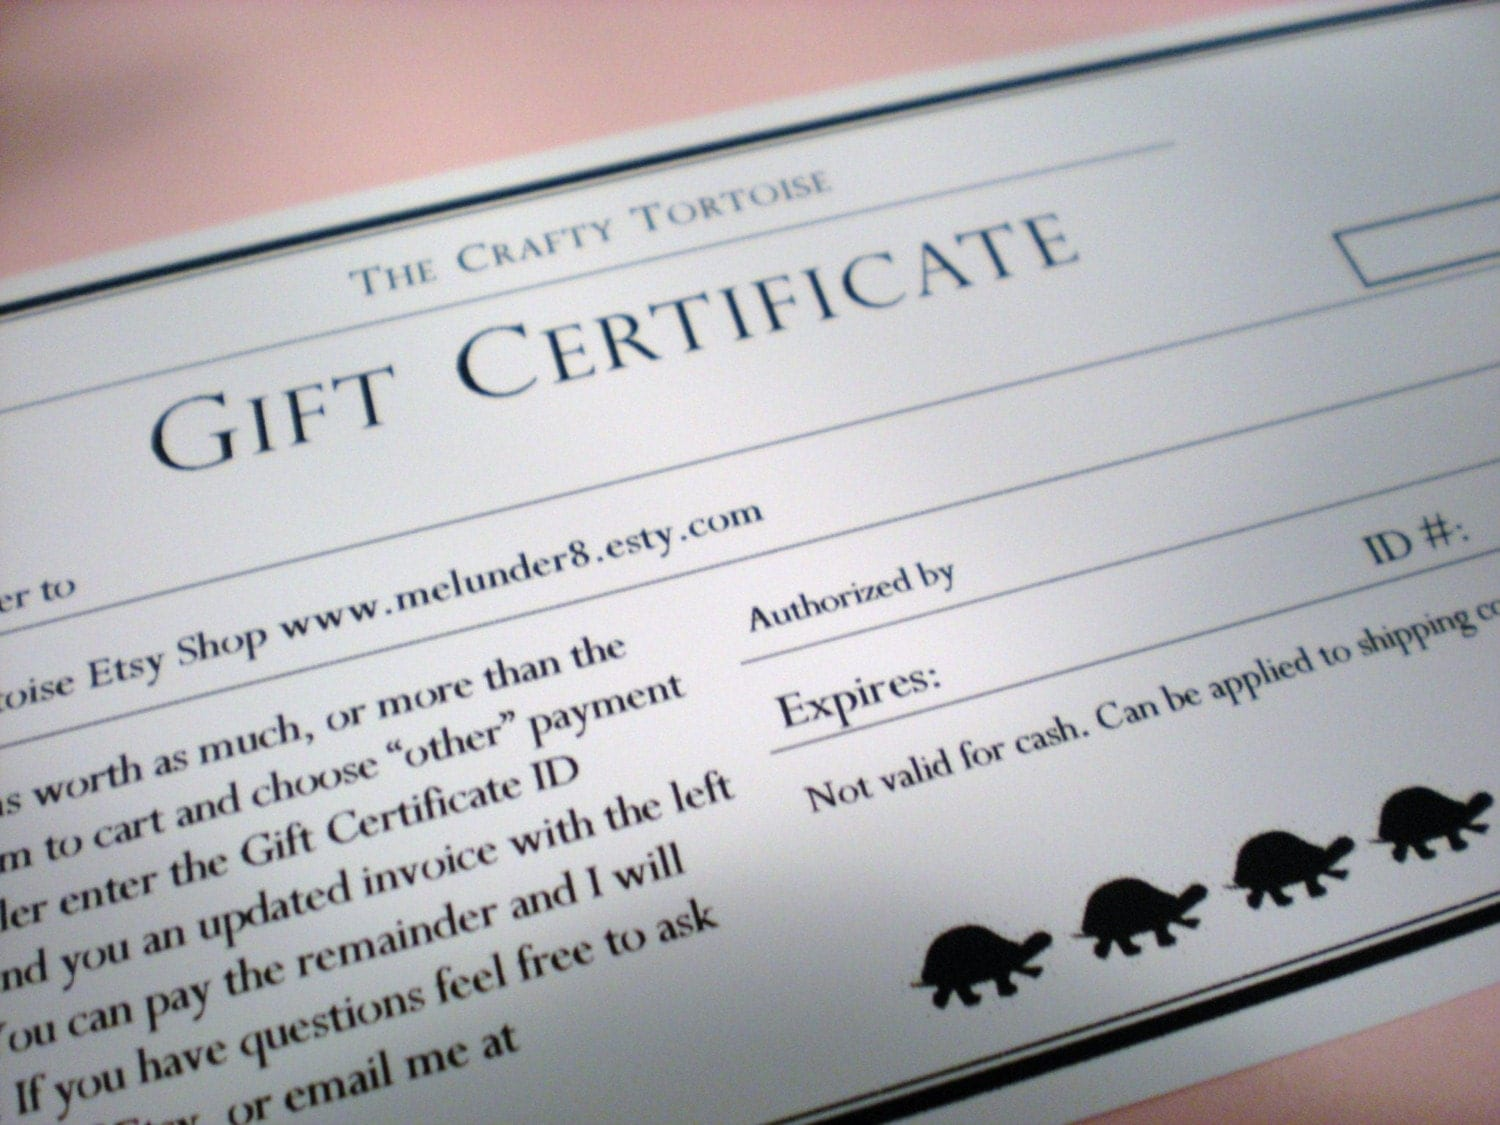 The Crafty Tortoise Gift Certificate